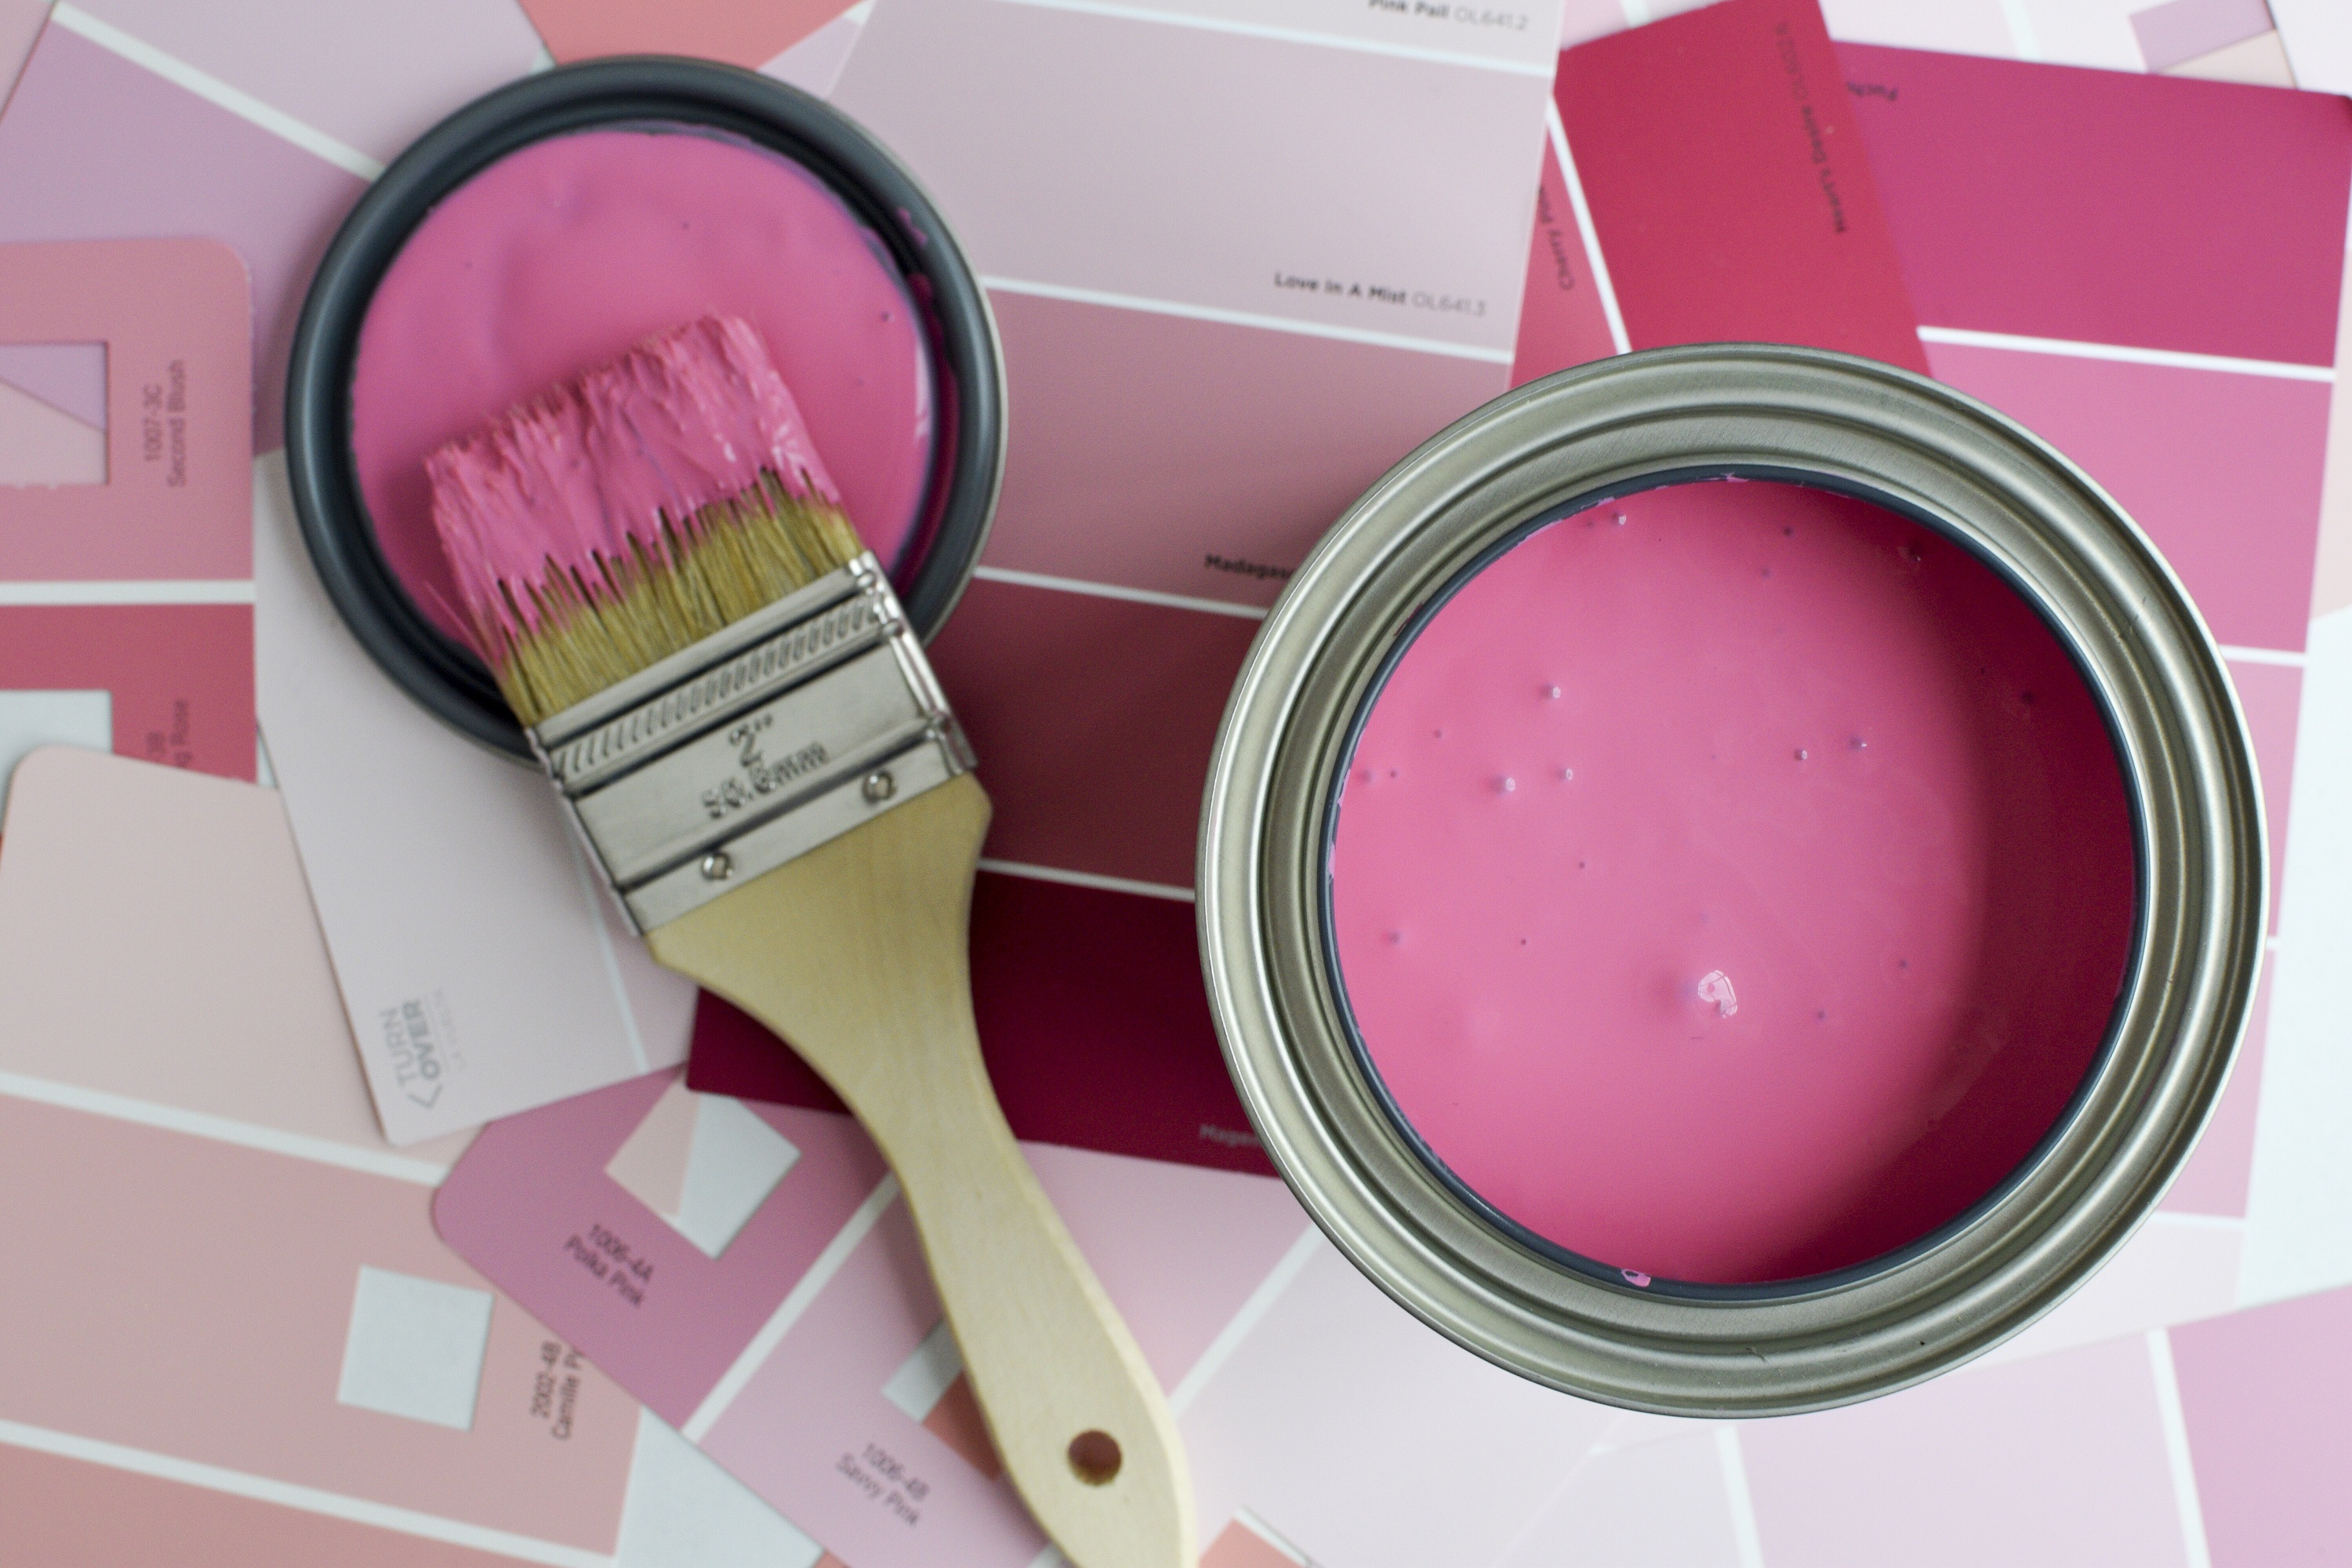 Image of paint can and paint brush.